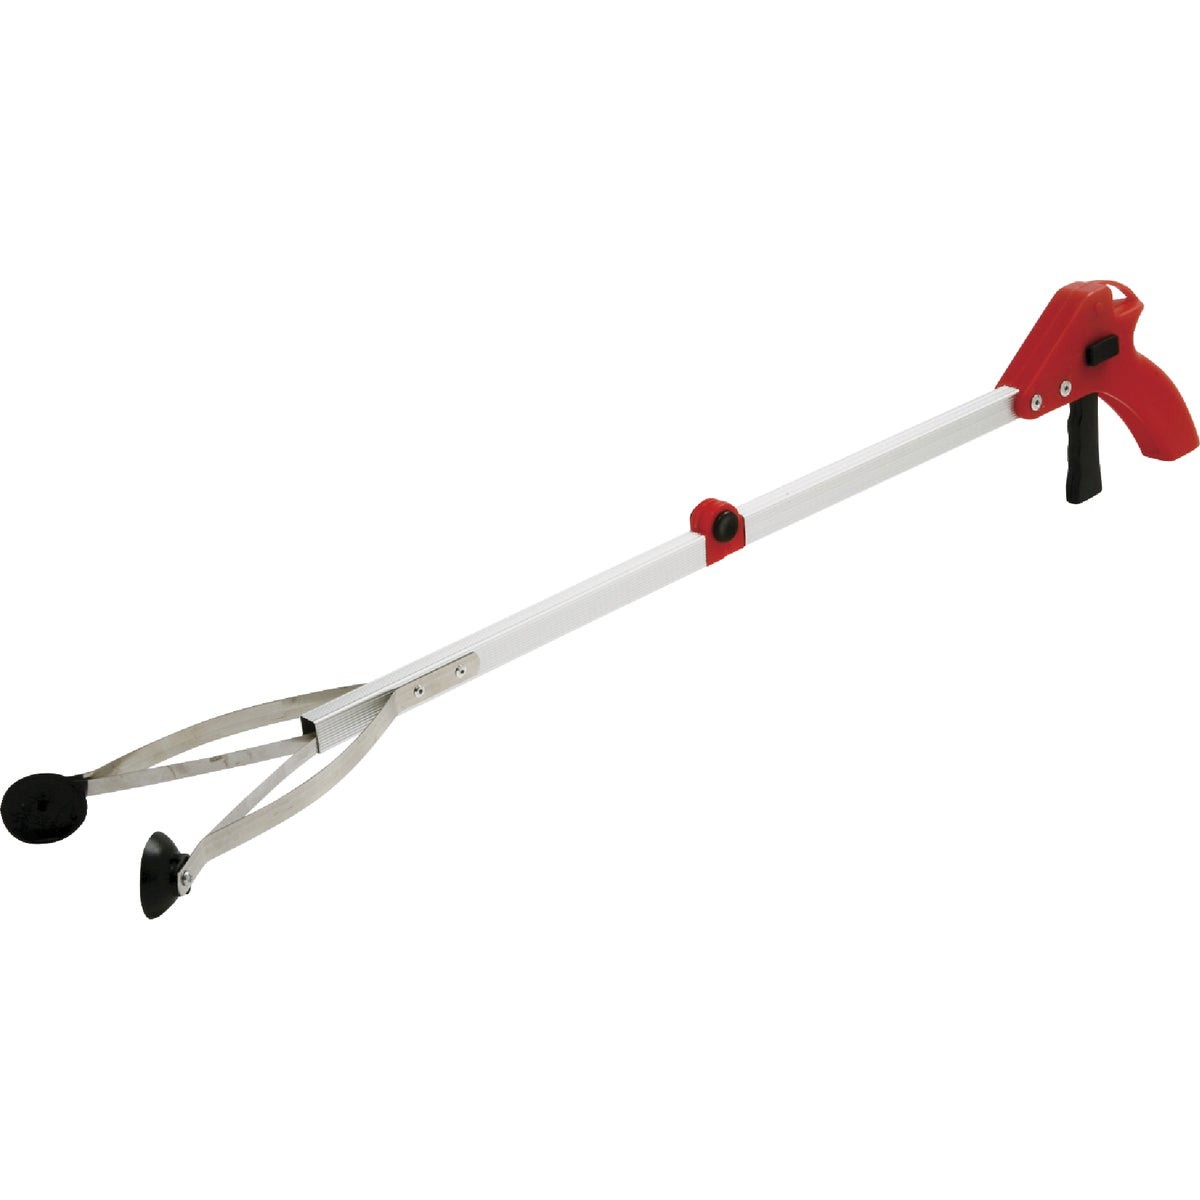 LONG ARM GRABBER - 10200 by Norpro